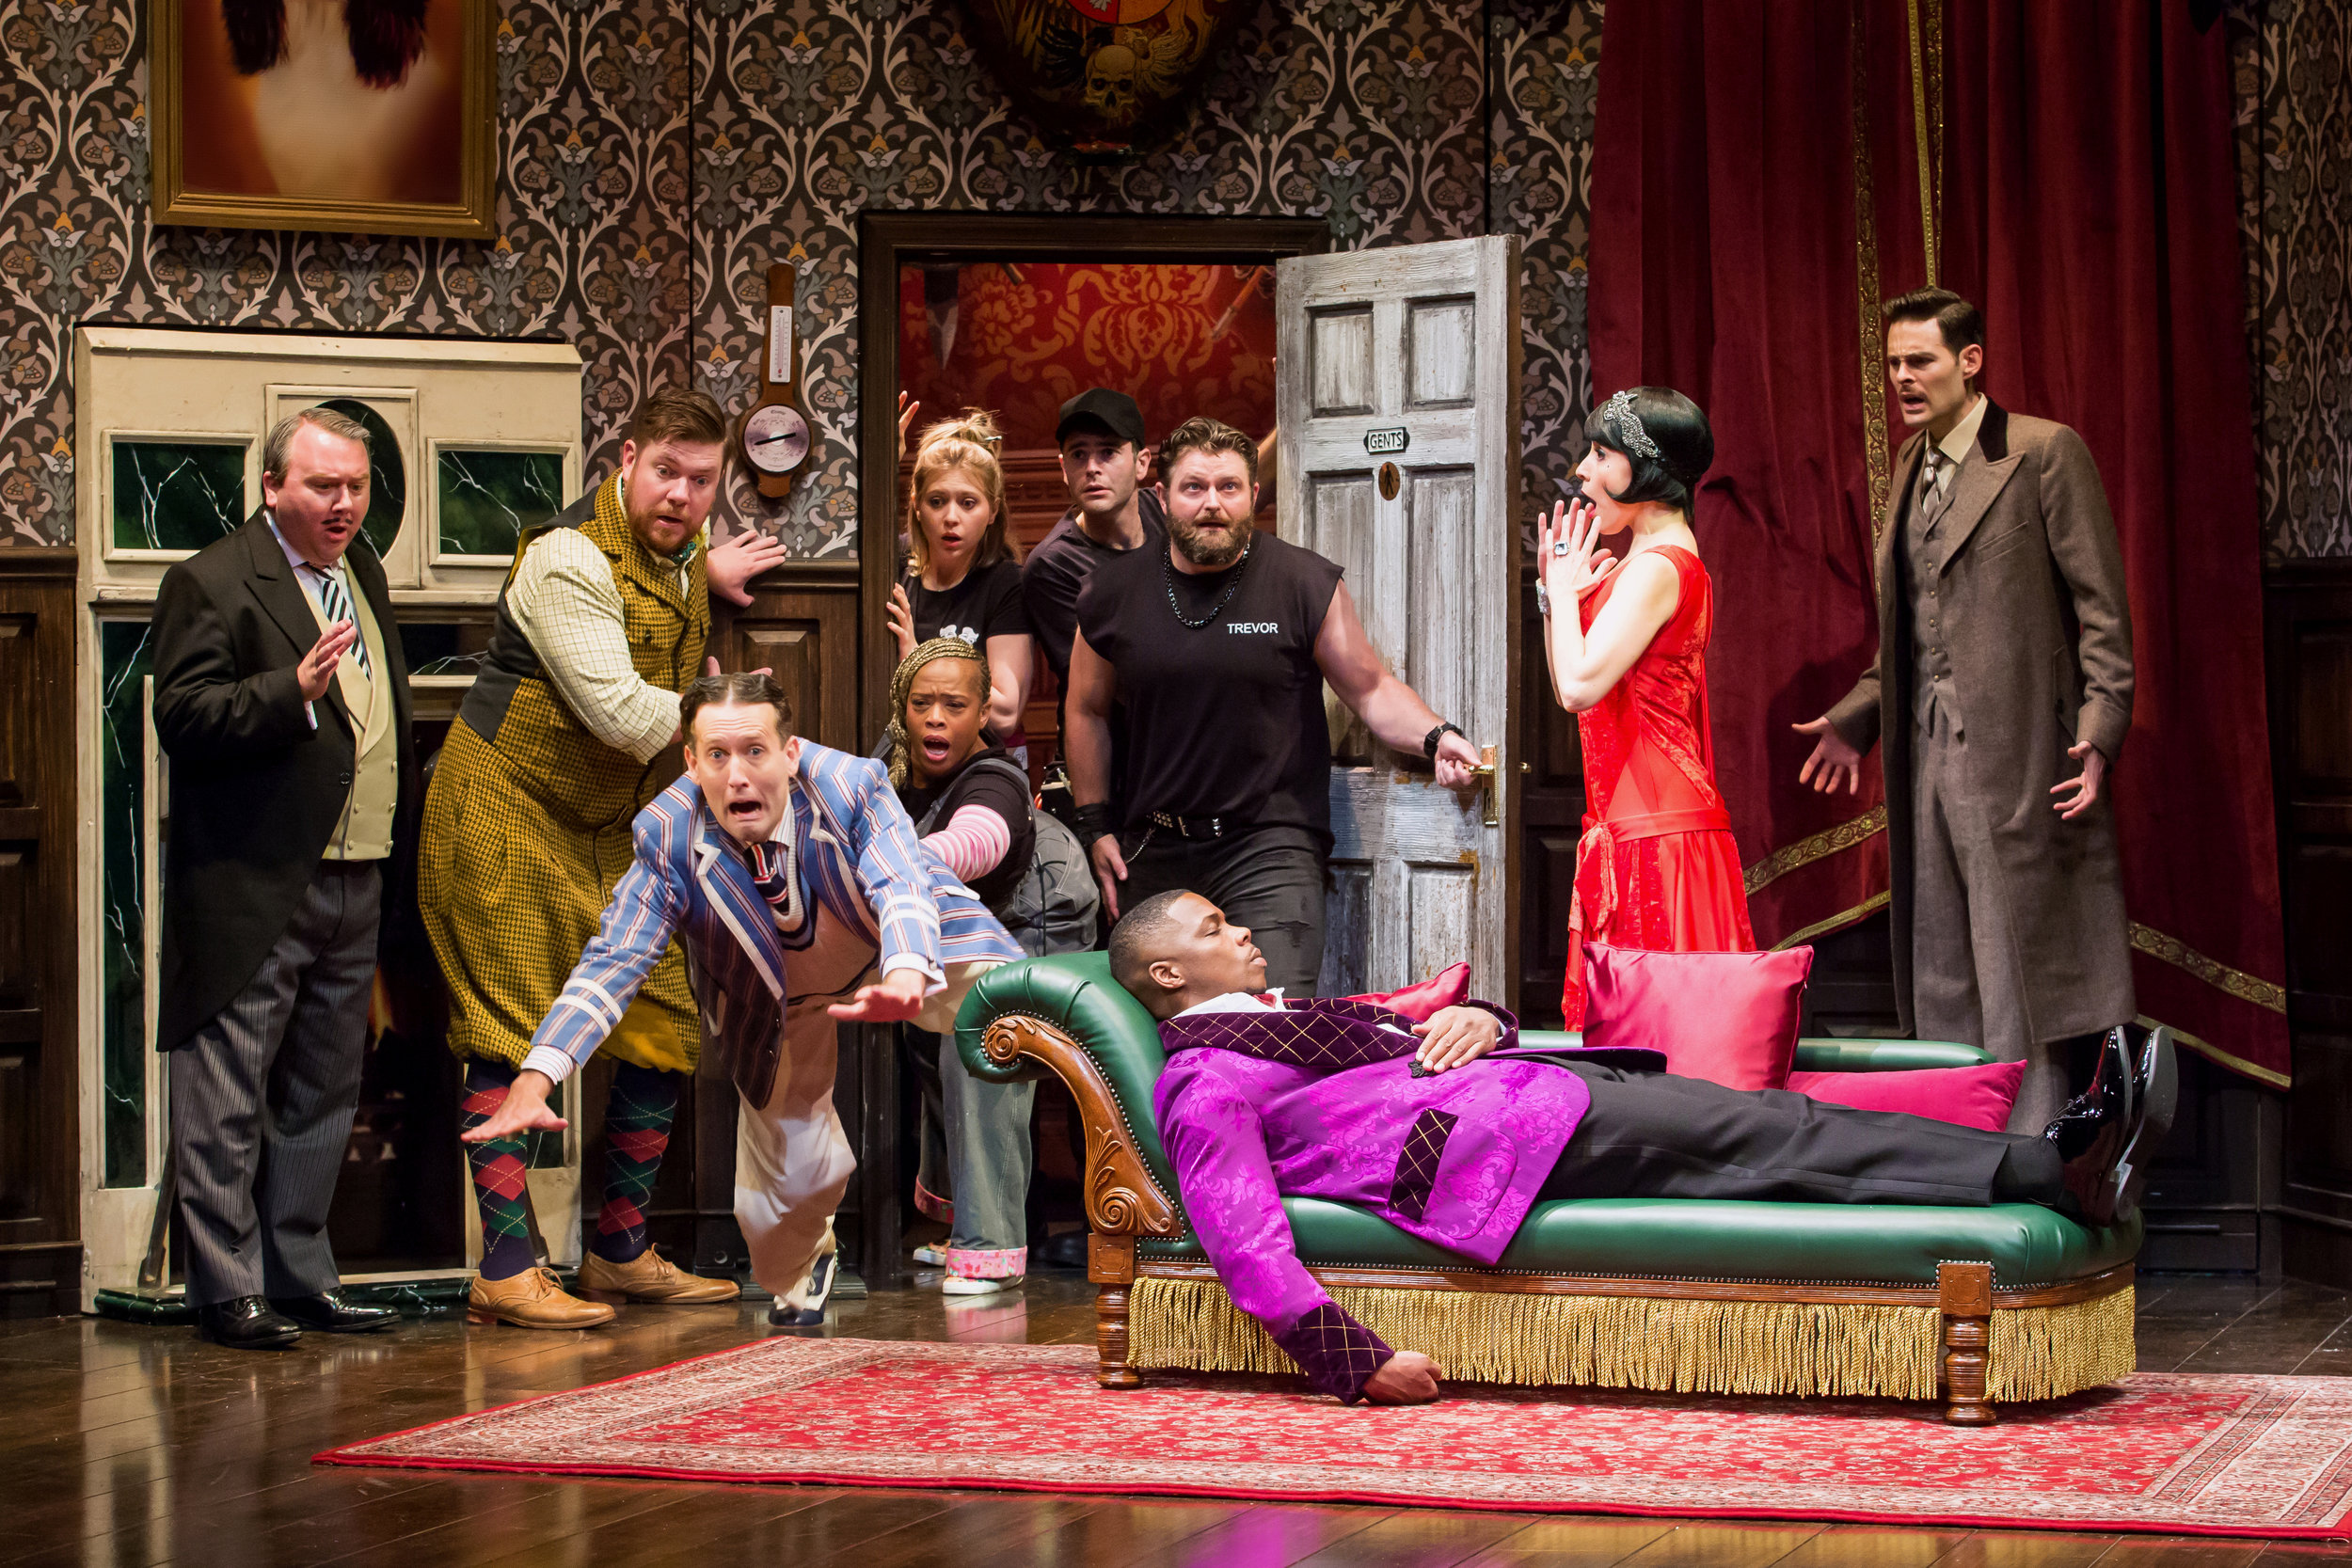 Oct 3 Theater review: The Play That Goes Wrong at the Peace Center